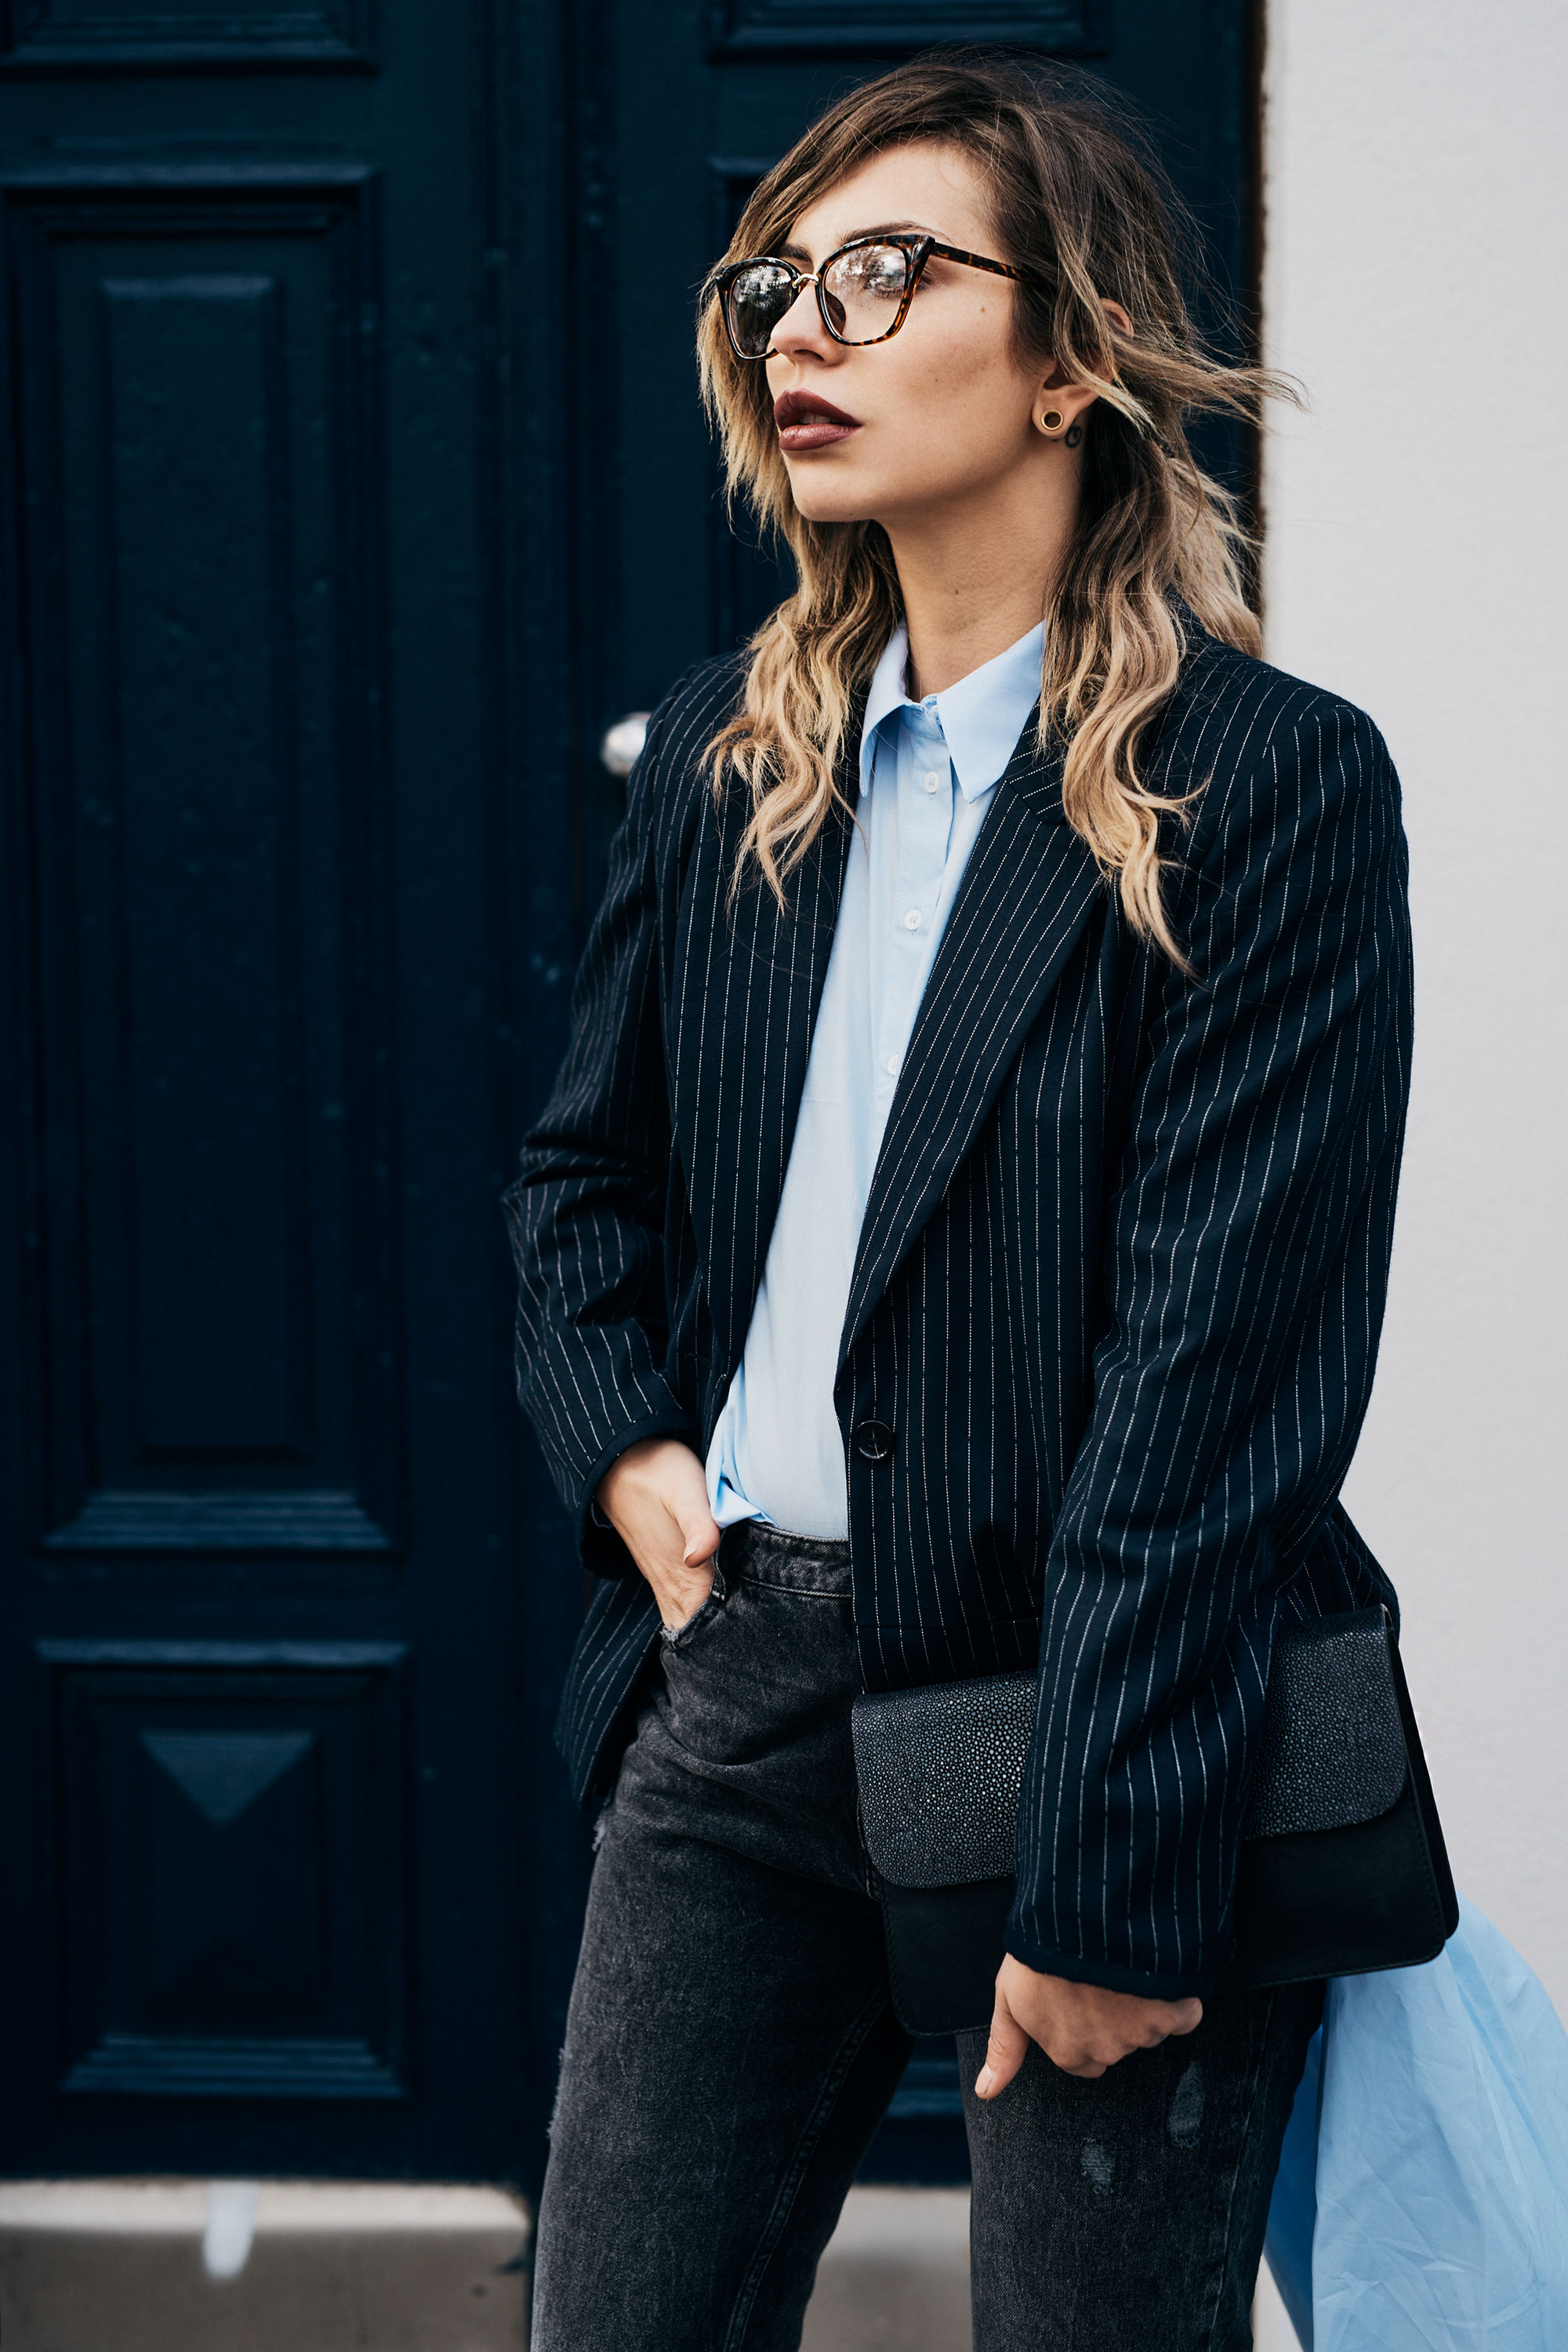 Street Style outfit | office, blue blazer, distressed jeans, edgy, Berlin, Zara